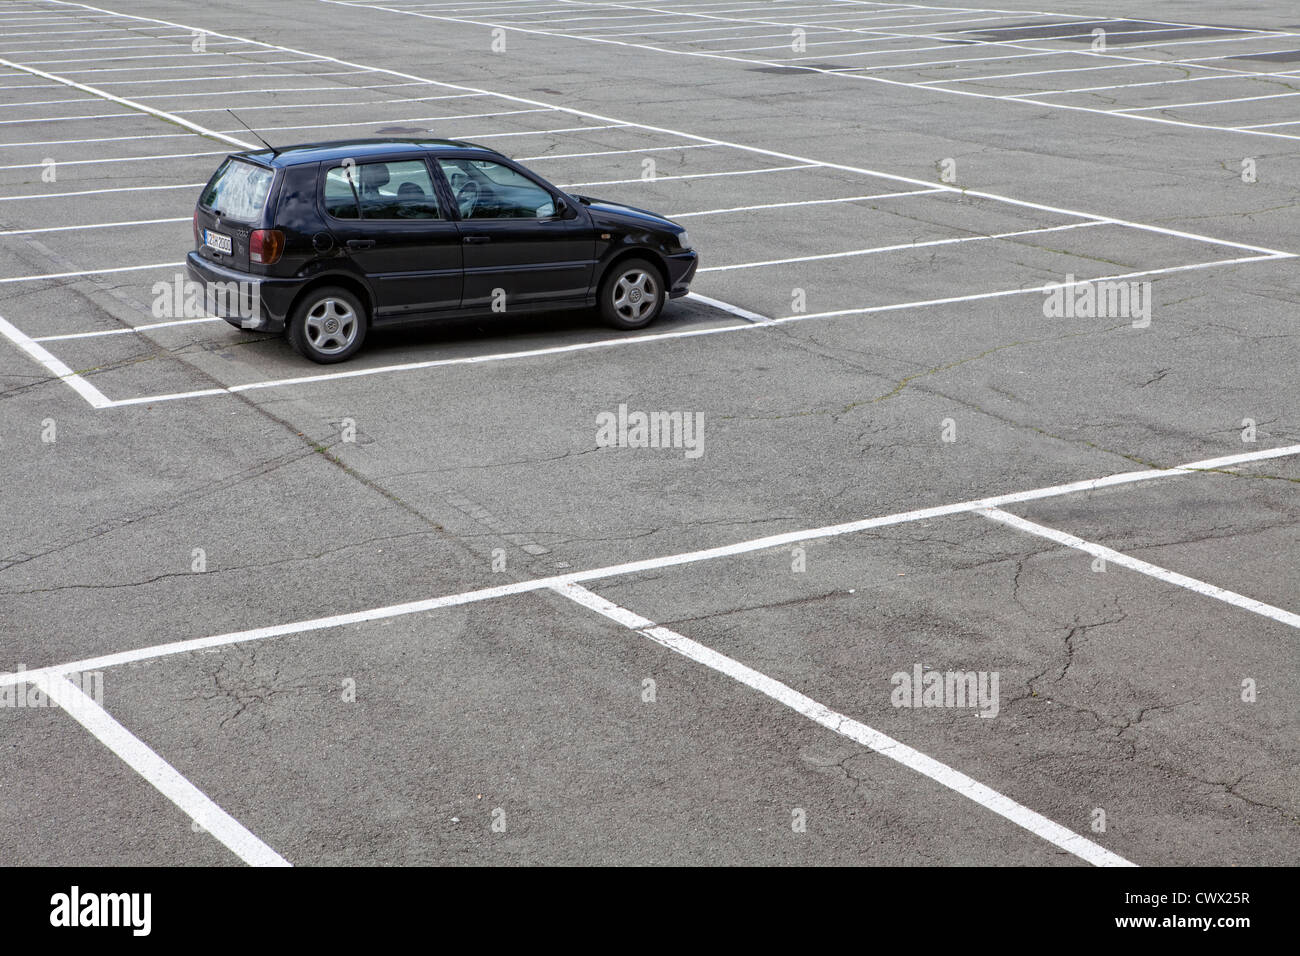 A single car parked on a large parking lot, concept image, parking spaces in Germany, Europe - Stock Image